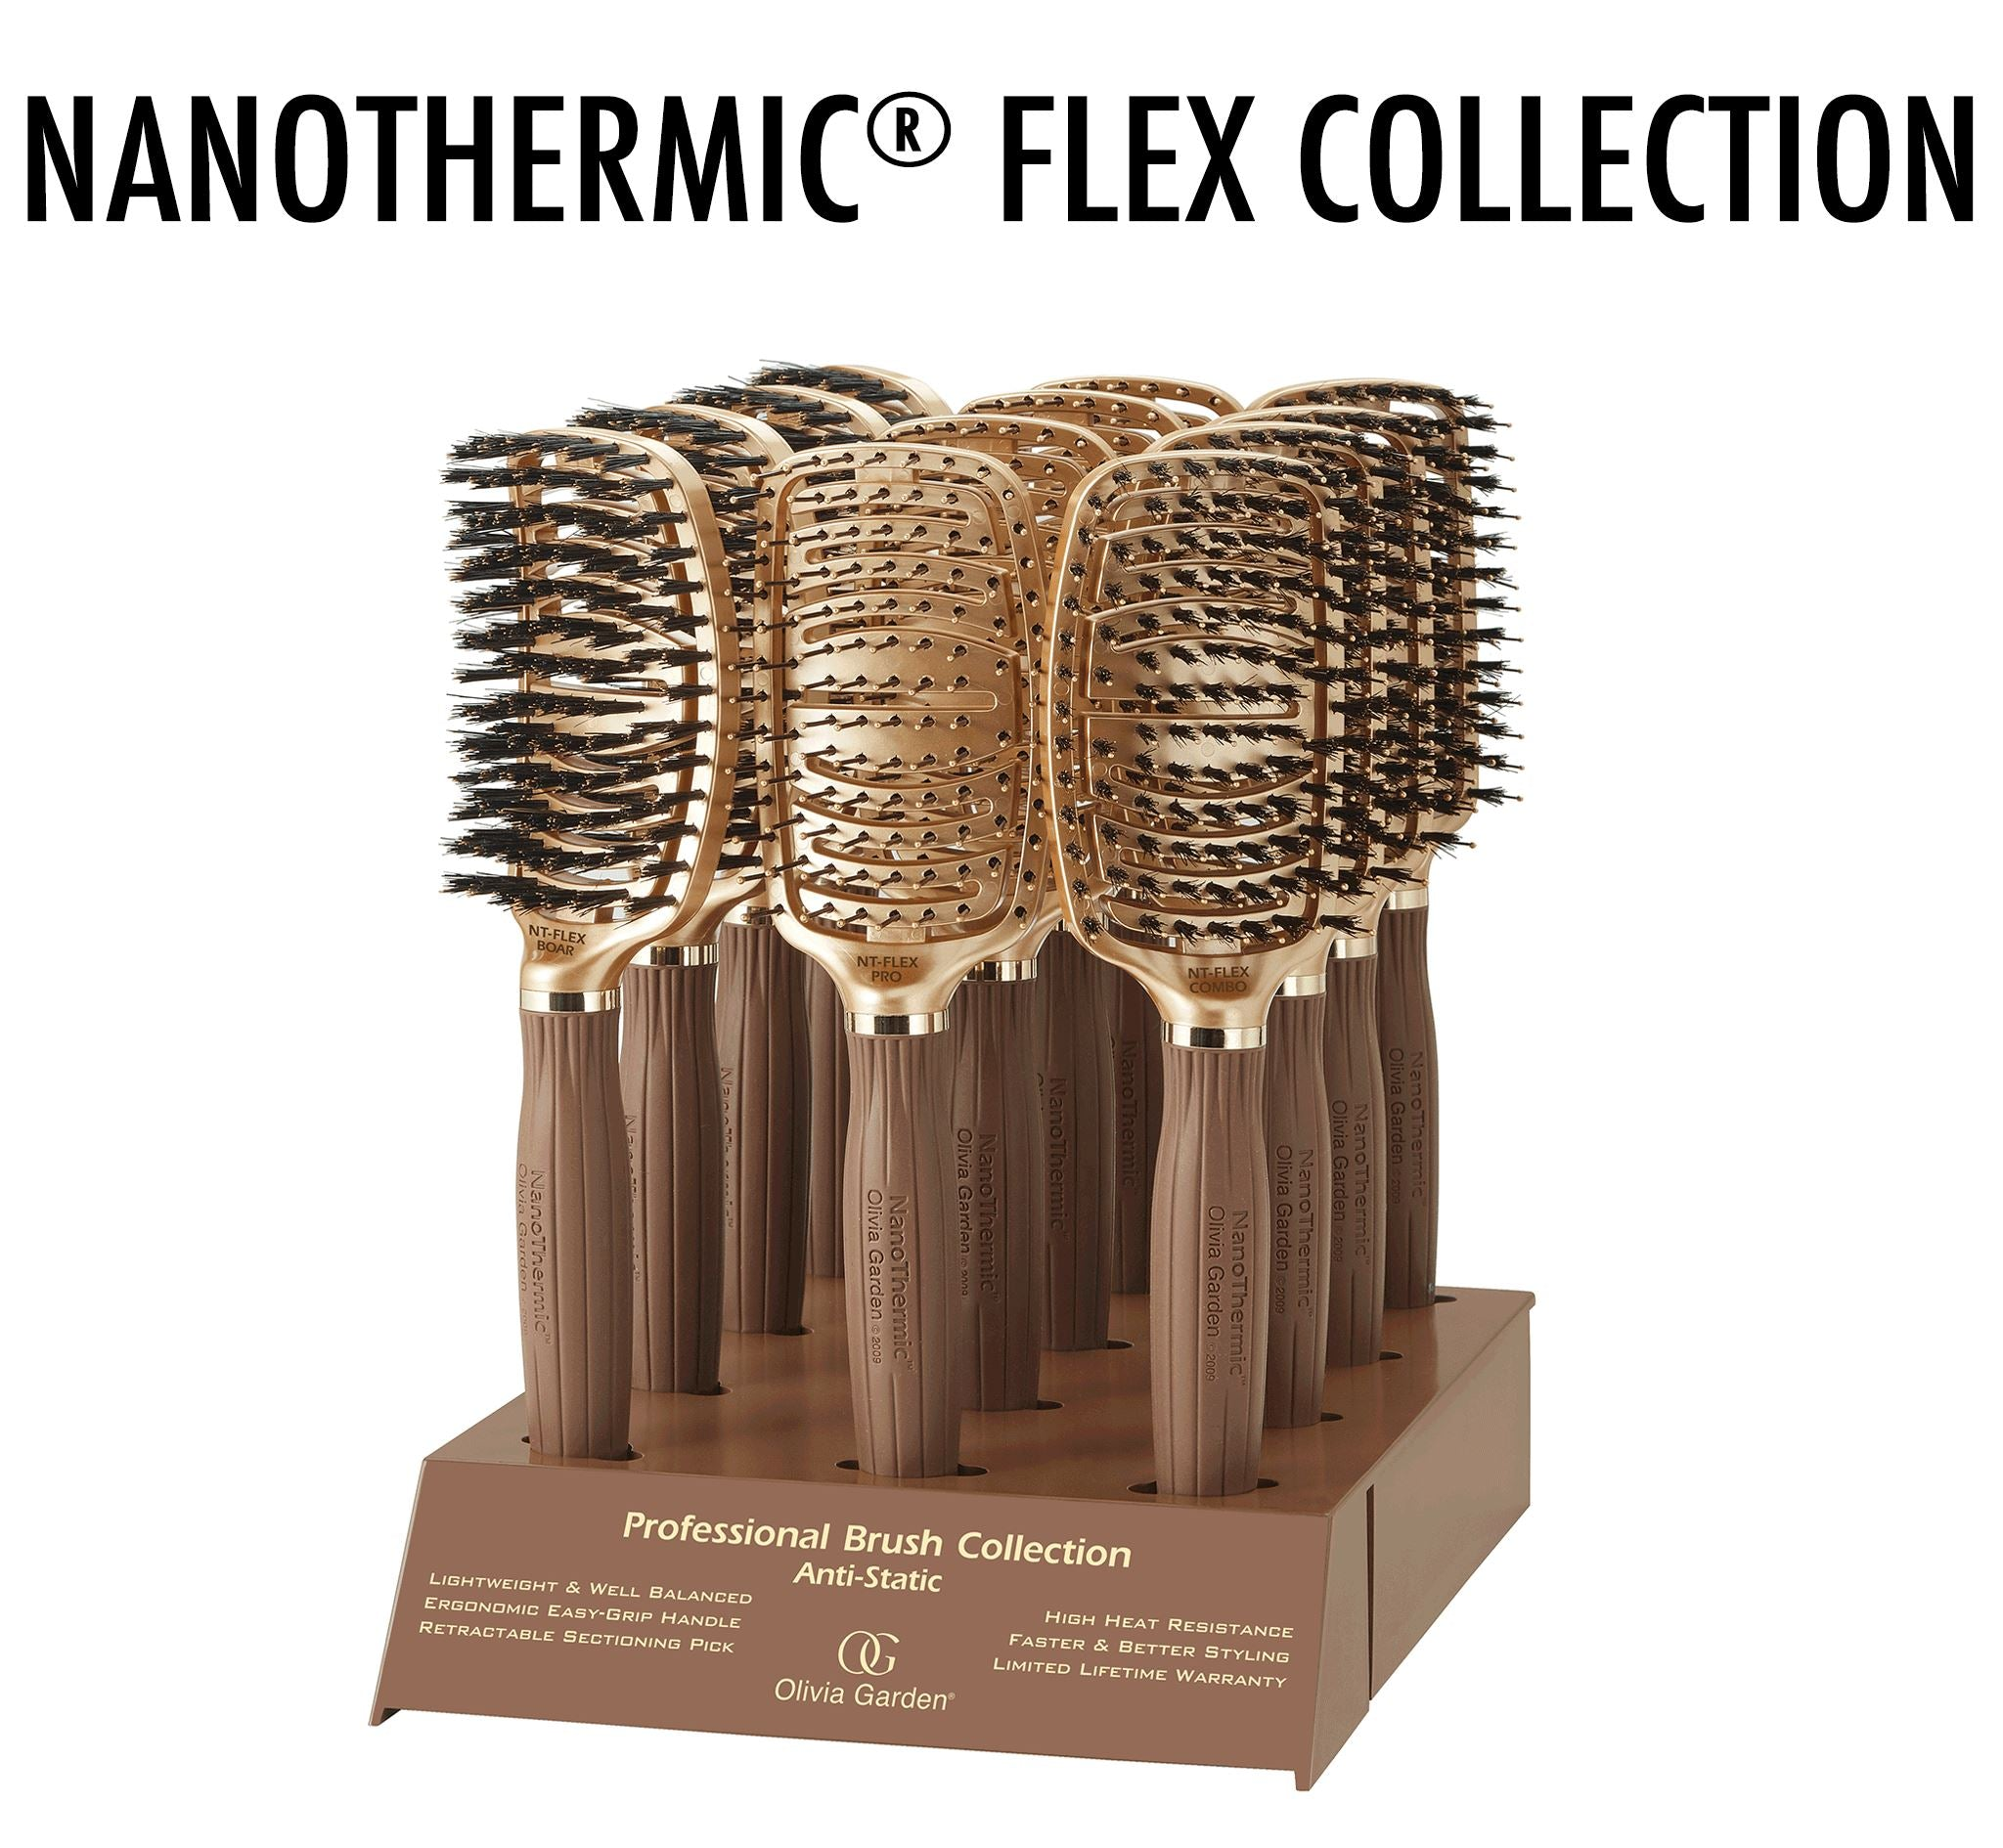 NanoThermic® Flex Collection